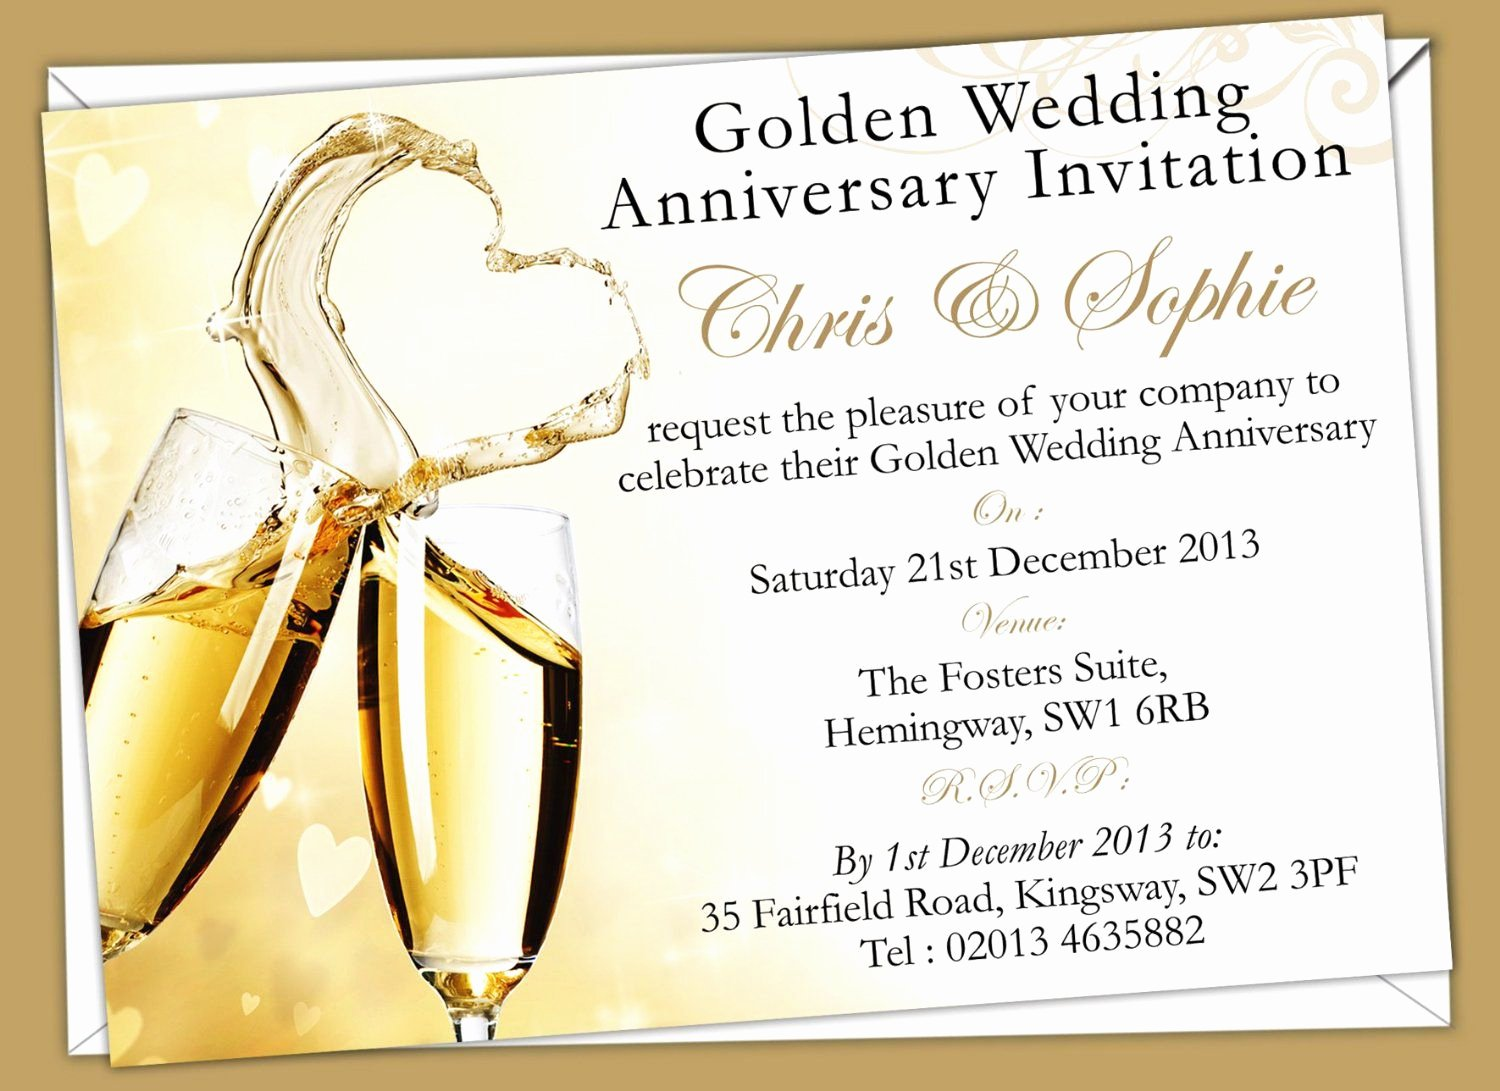 Wedding Anniversary Invitation Template Inspirational Wedding Invitations Golden Anniversary Invi with Templates